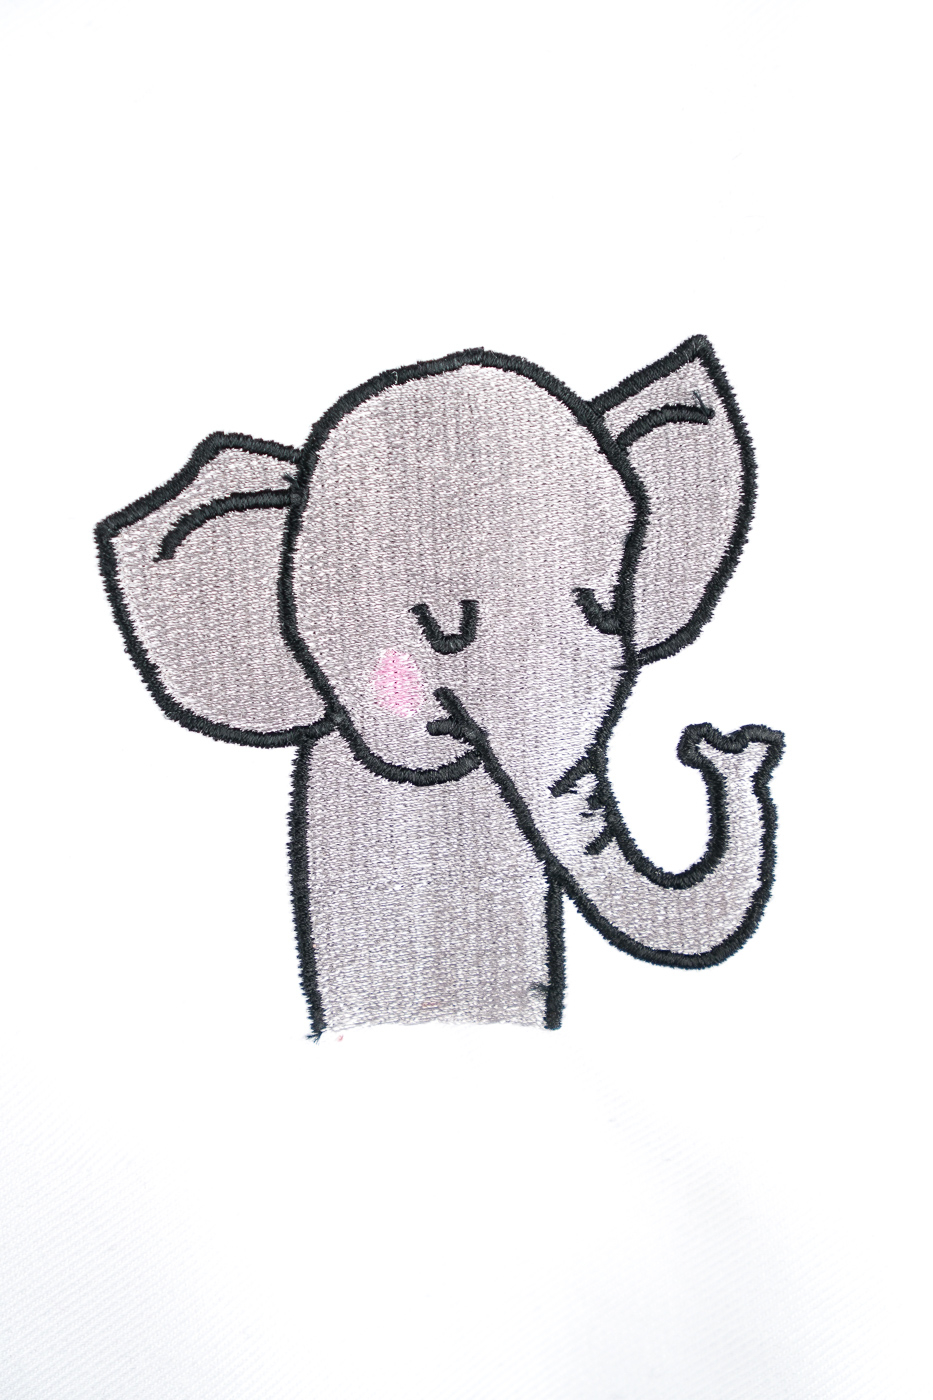 Die Stickdatei Elefant von den Safari Friends